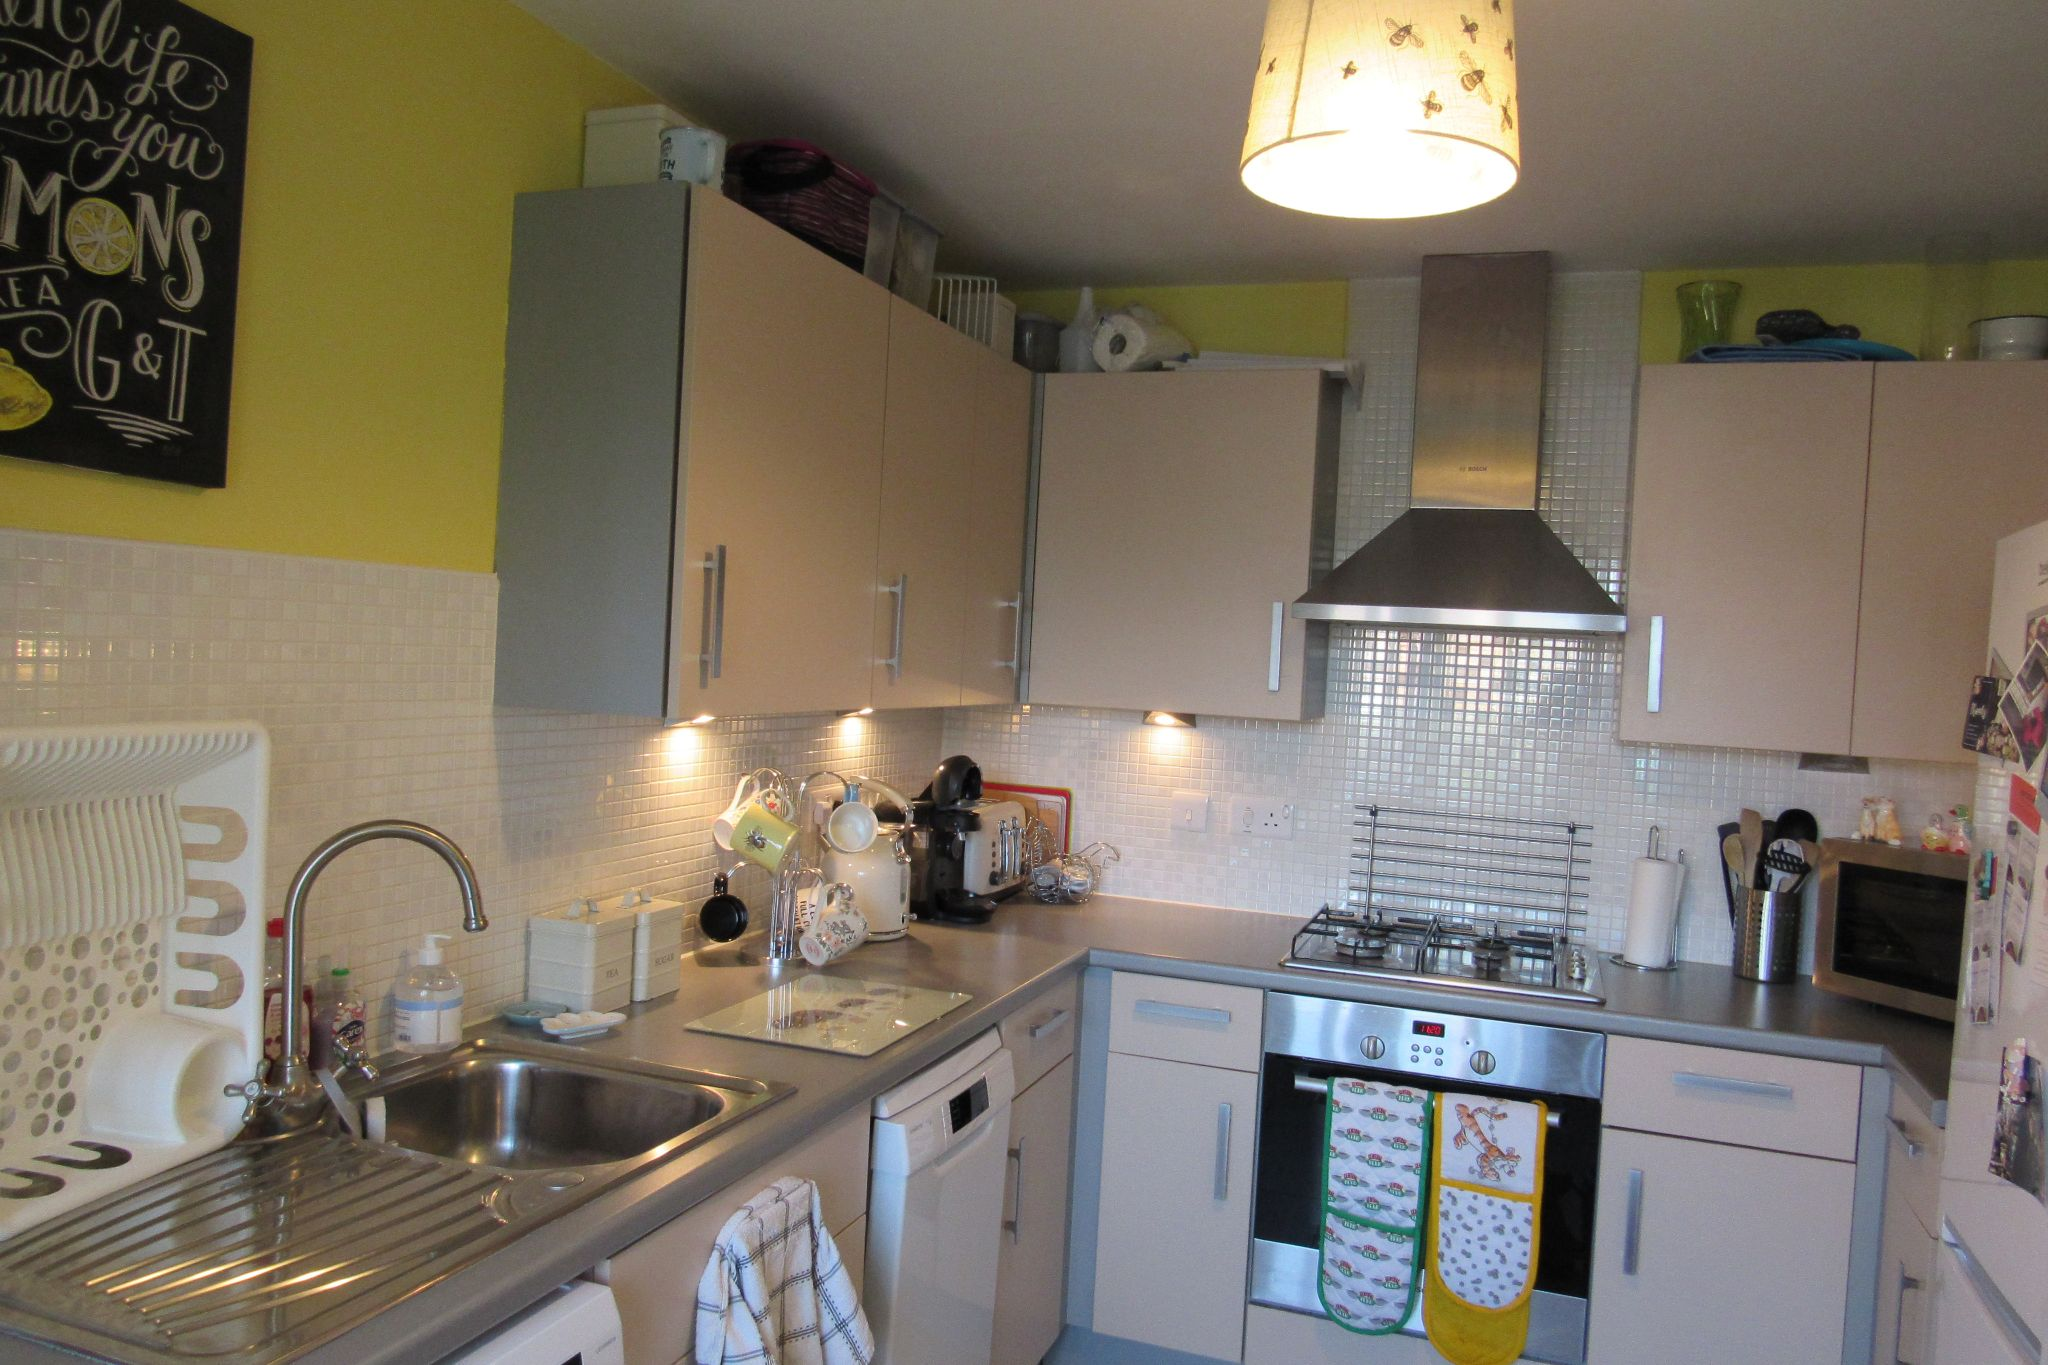 2 bedroom semi-detached house SSTC in Manchester - Photograph 7.